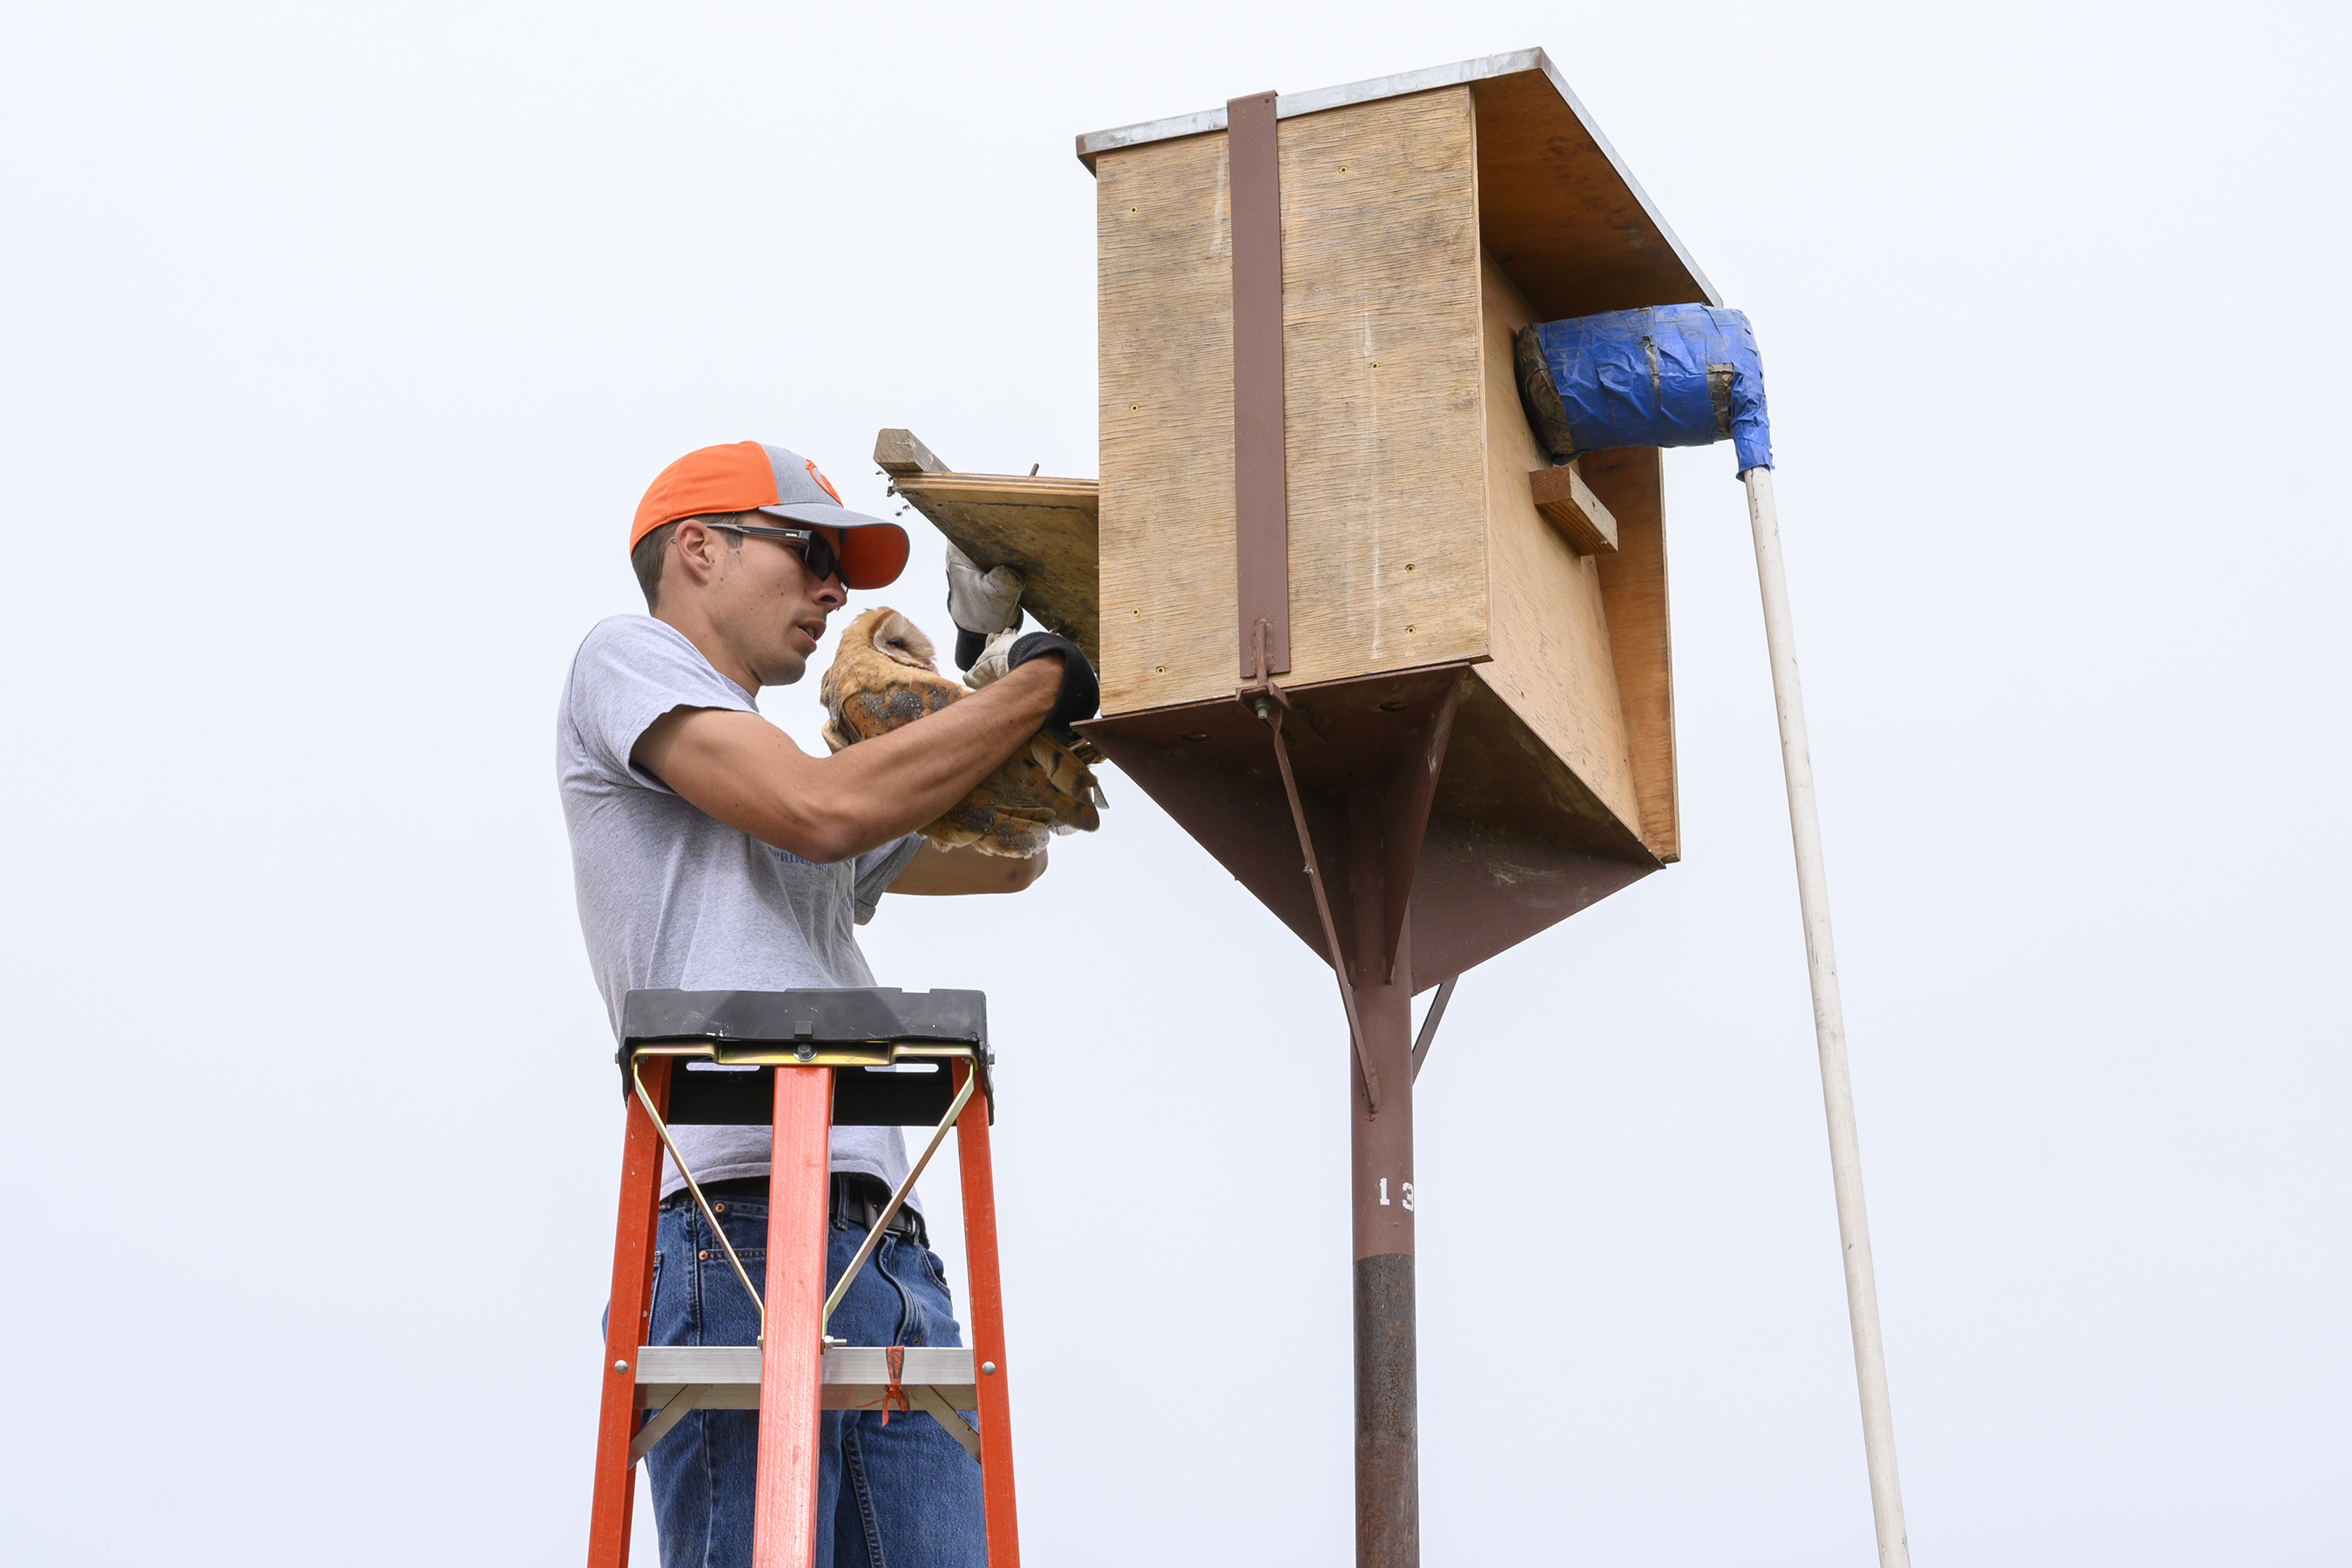 Student ascends ladder and carefully brings barn owl out of nesting box